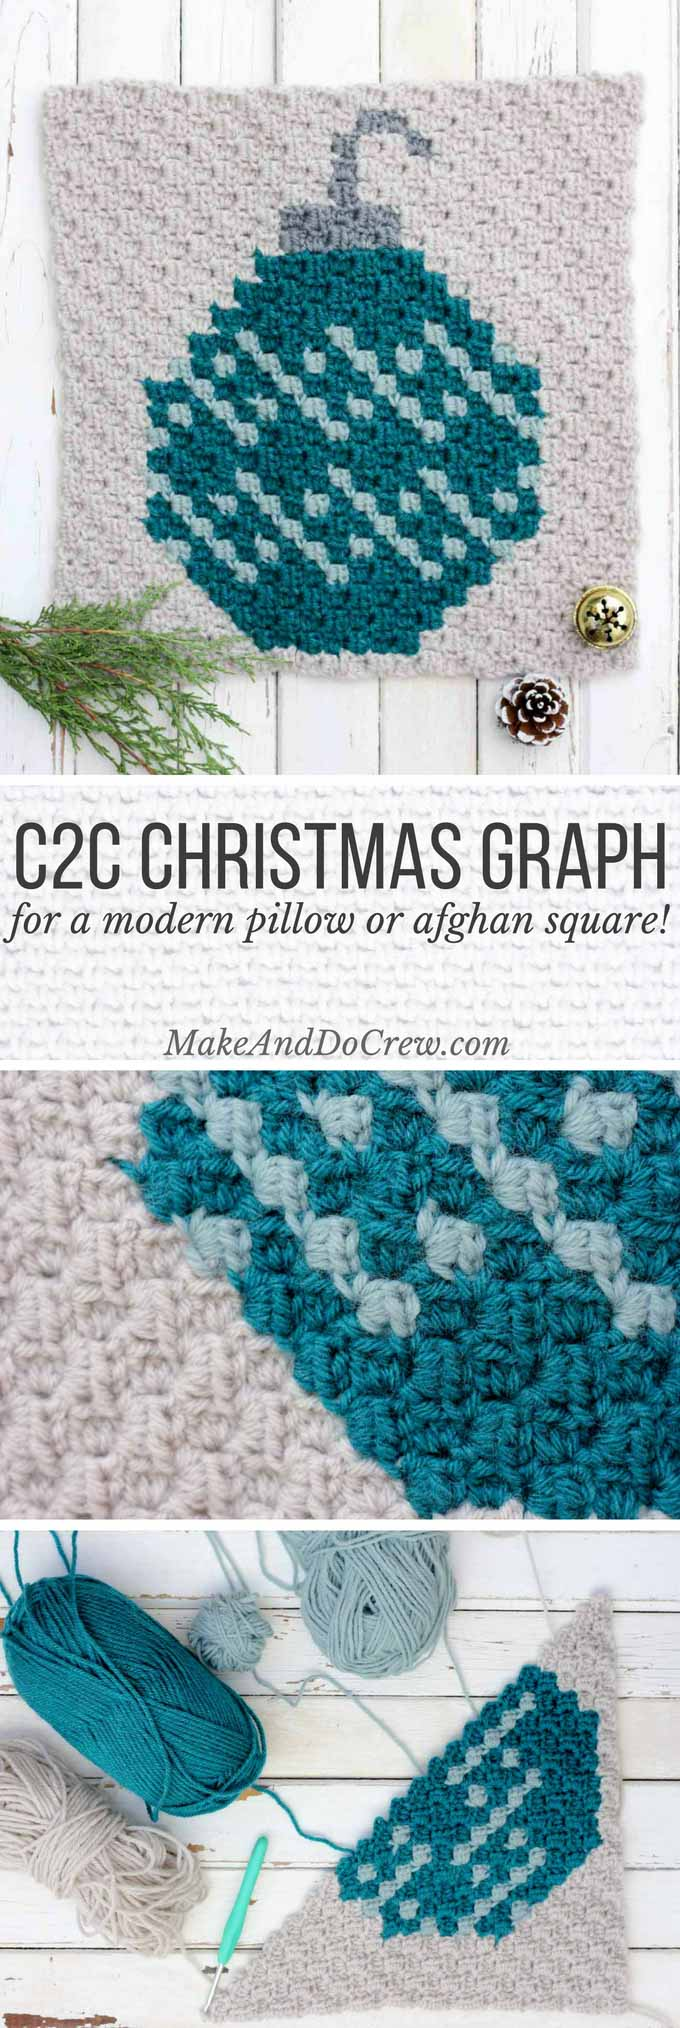 This C2C crochet Christmas pattern is the second in my free afghan series. This monochromatic bulb ornament would work great as a festive pillow front too! Click to download the other free graphs for this festive, modern afghan!